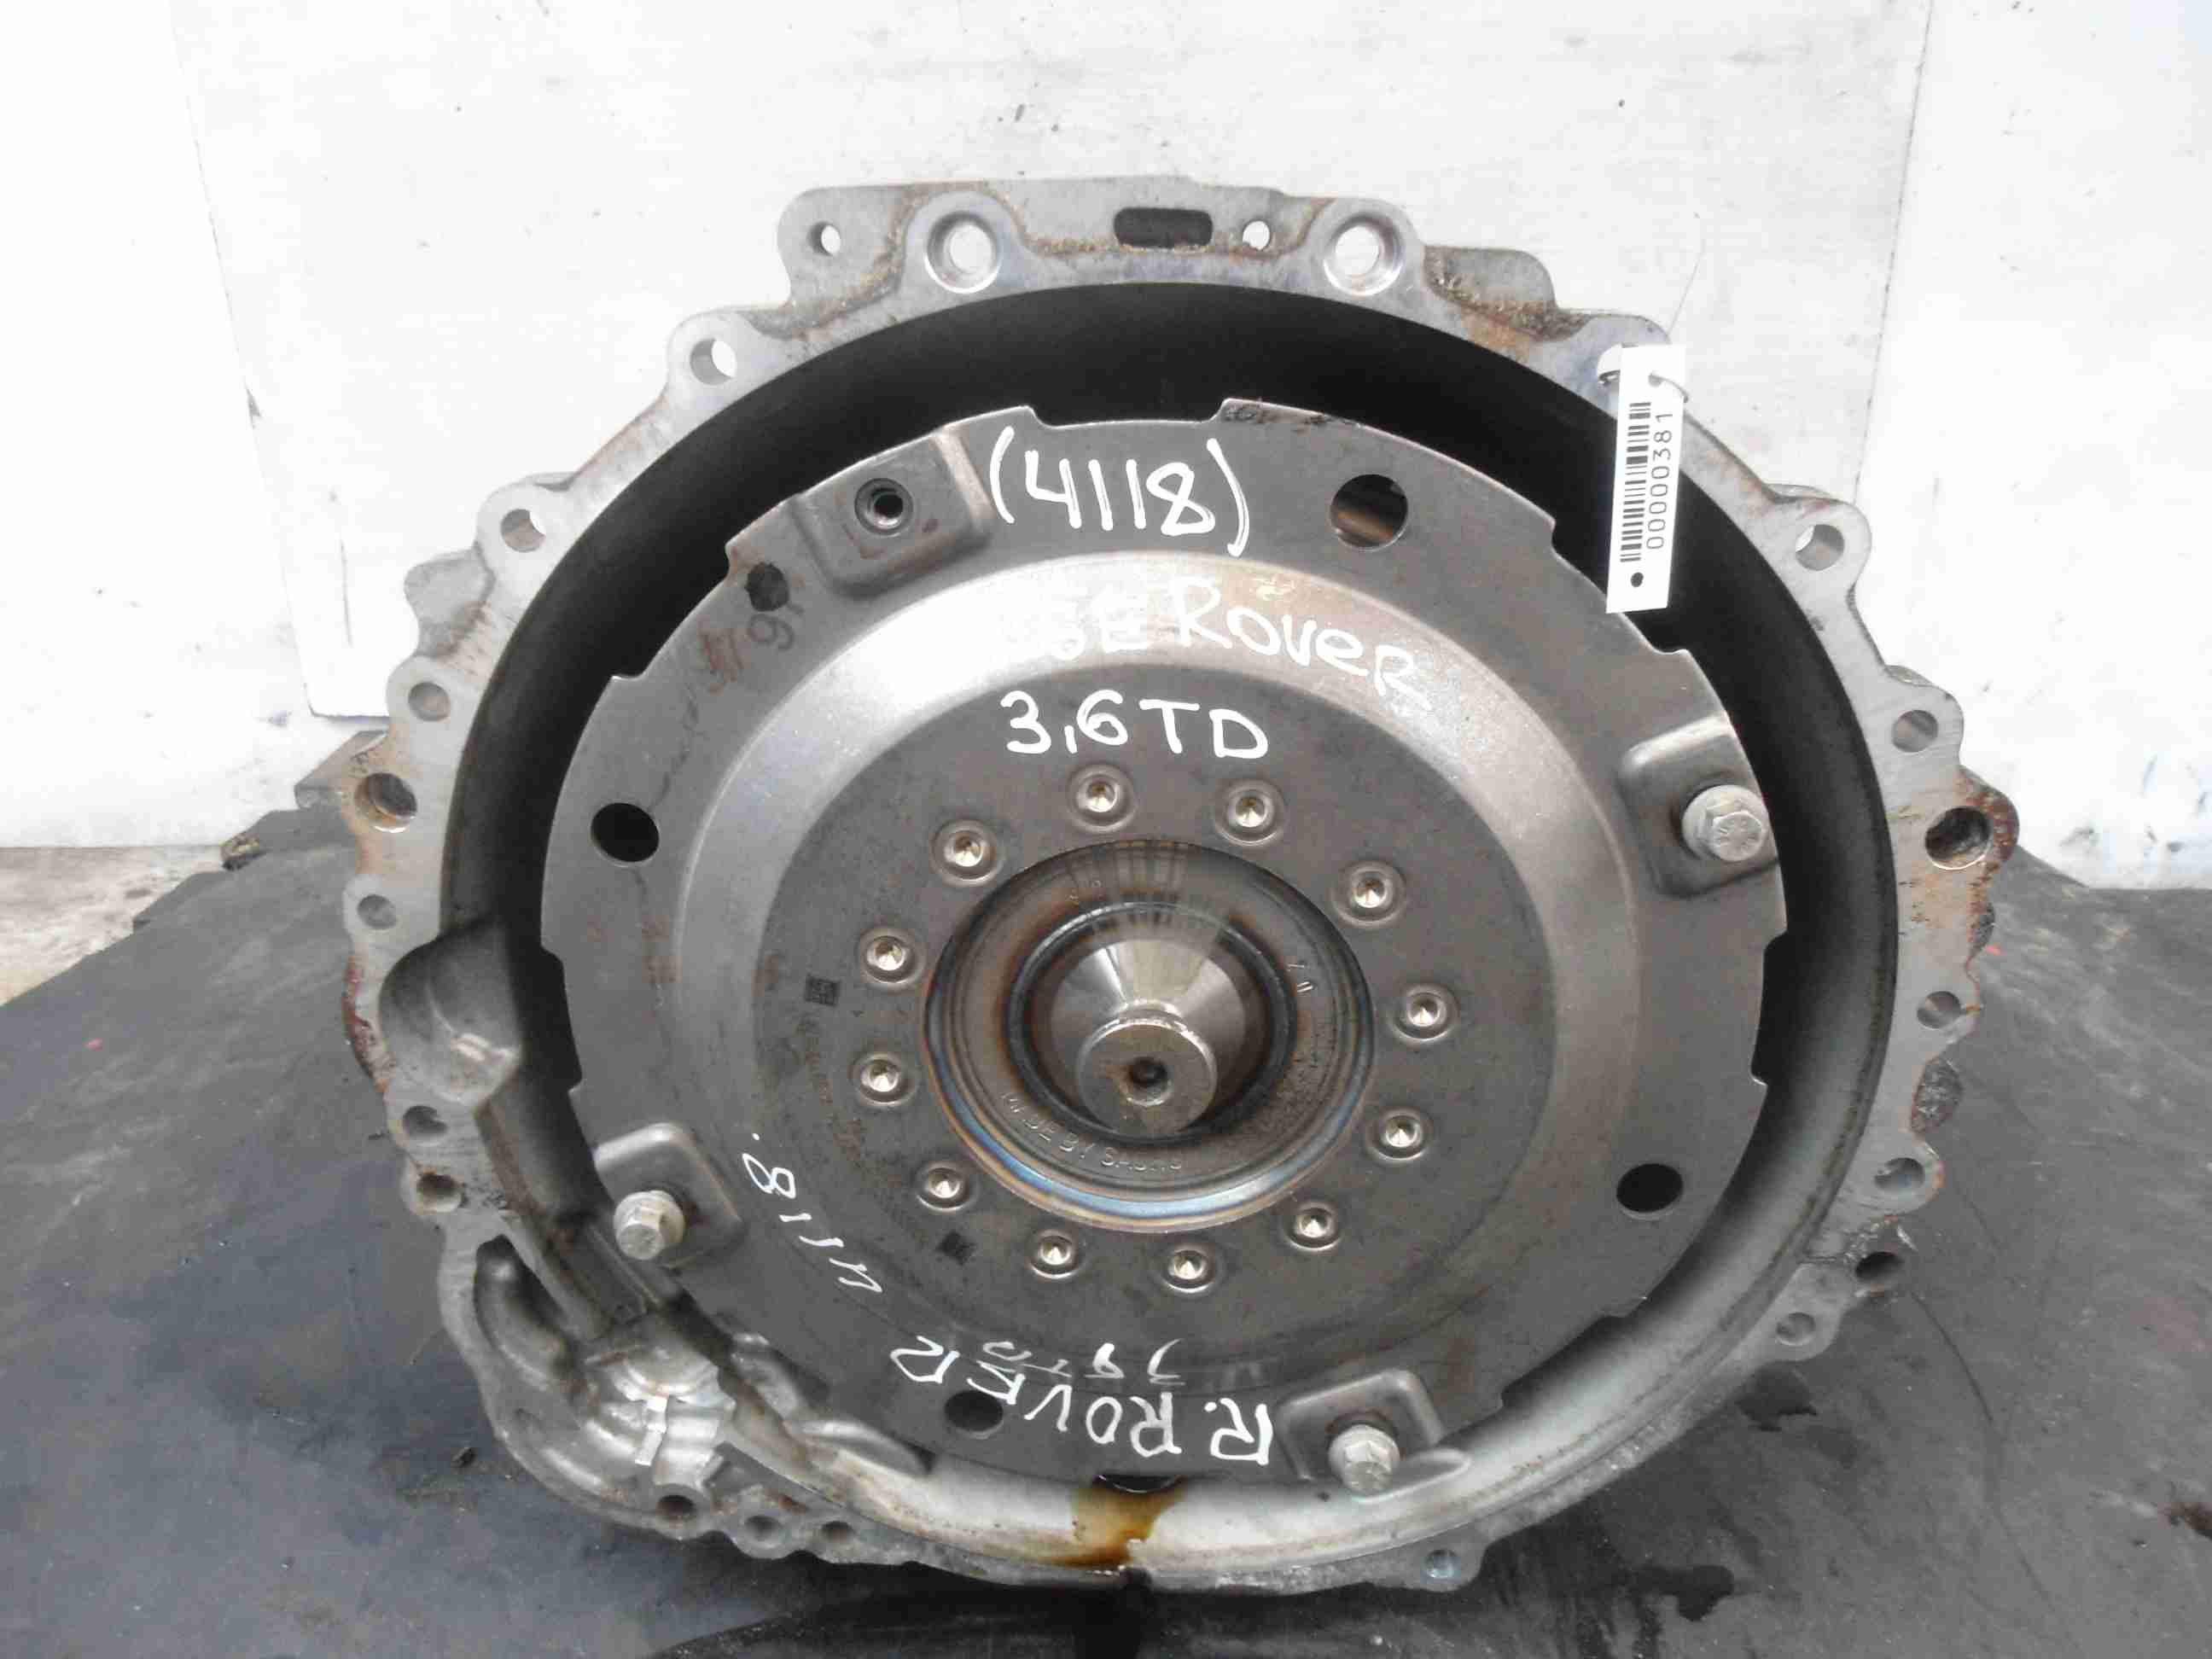 АКПП 1068020075 6HP26  Land Rover Range Rover III (LM,L322) 2002 - 2012 3.6TD